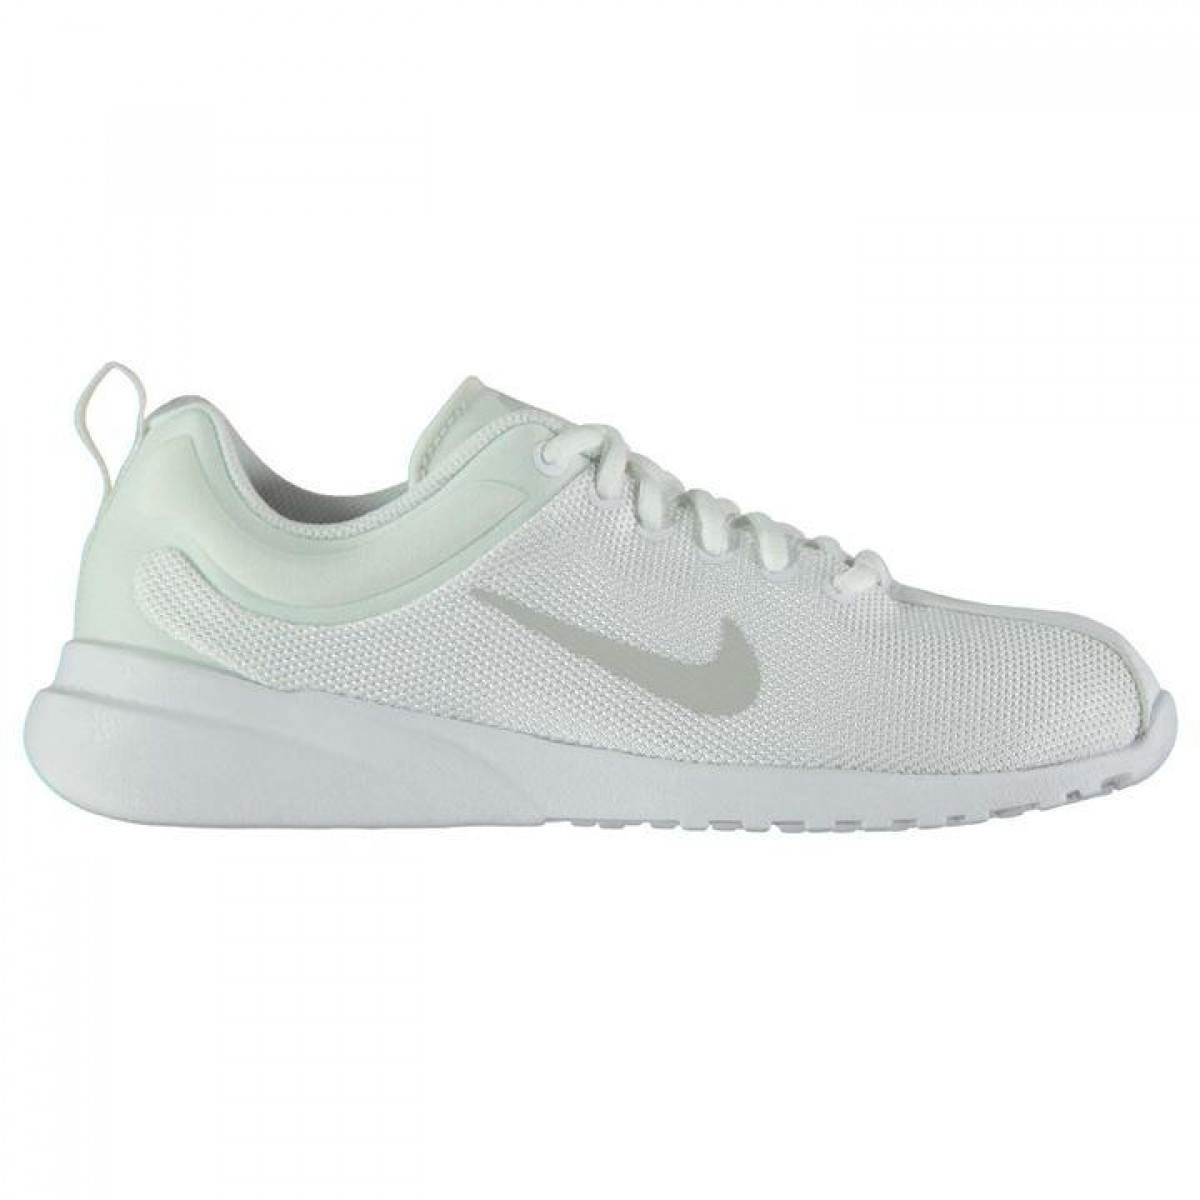 Кроссовки Nike Superflyte White/Platinum - Оригинал, фото 1